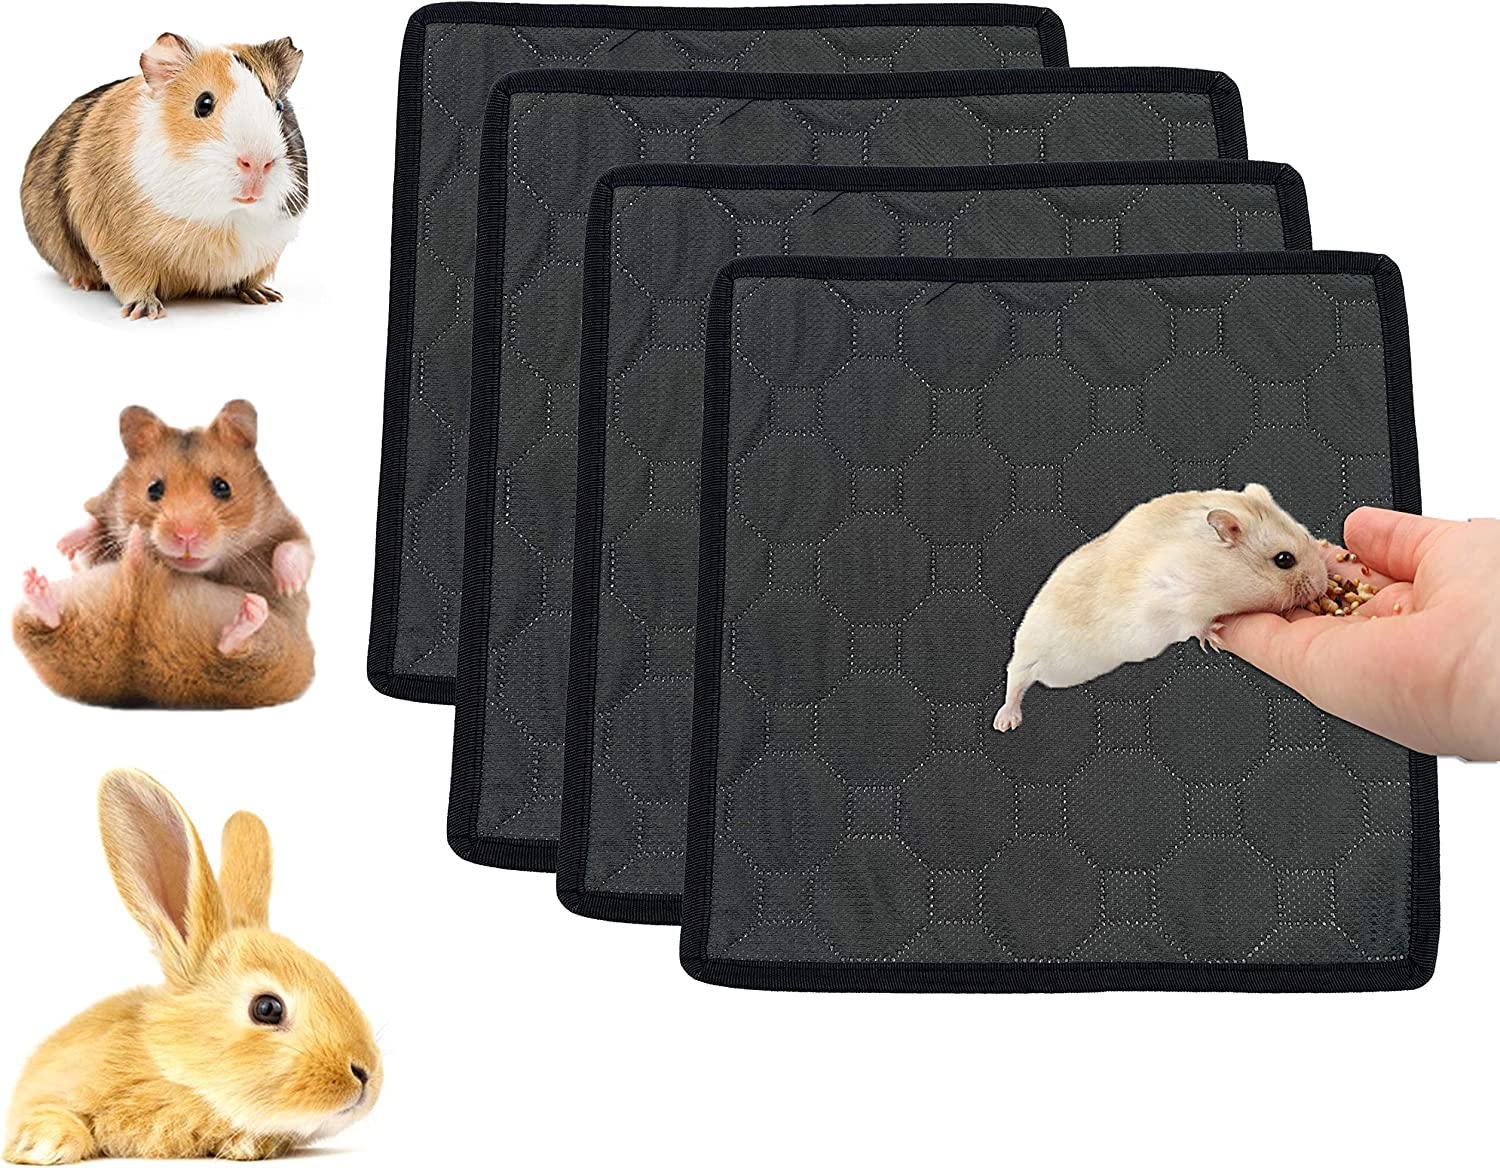 Max 77% OFF STTQYB Max 71% OFF Guinea Pig Cage Liner Fleece for Liners